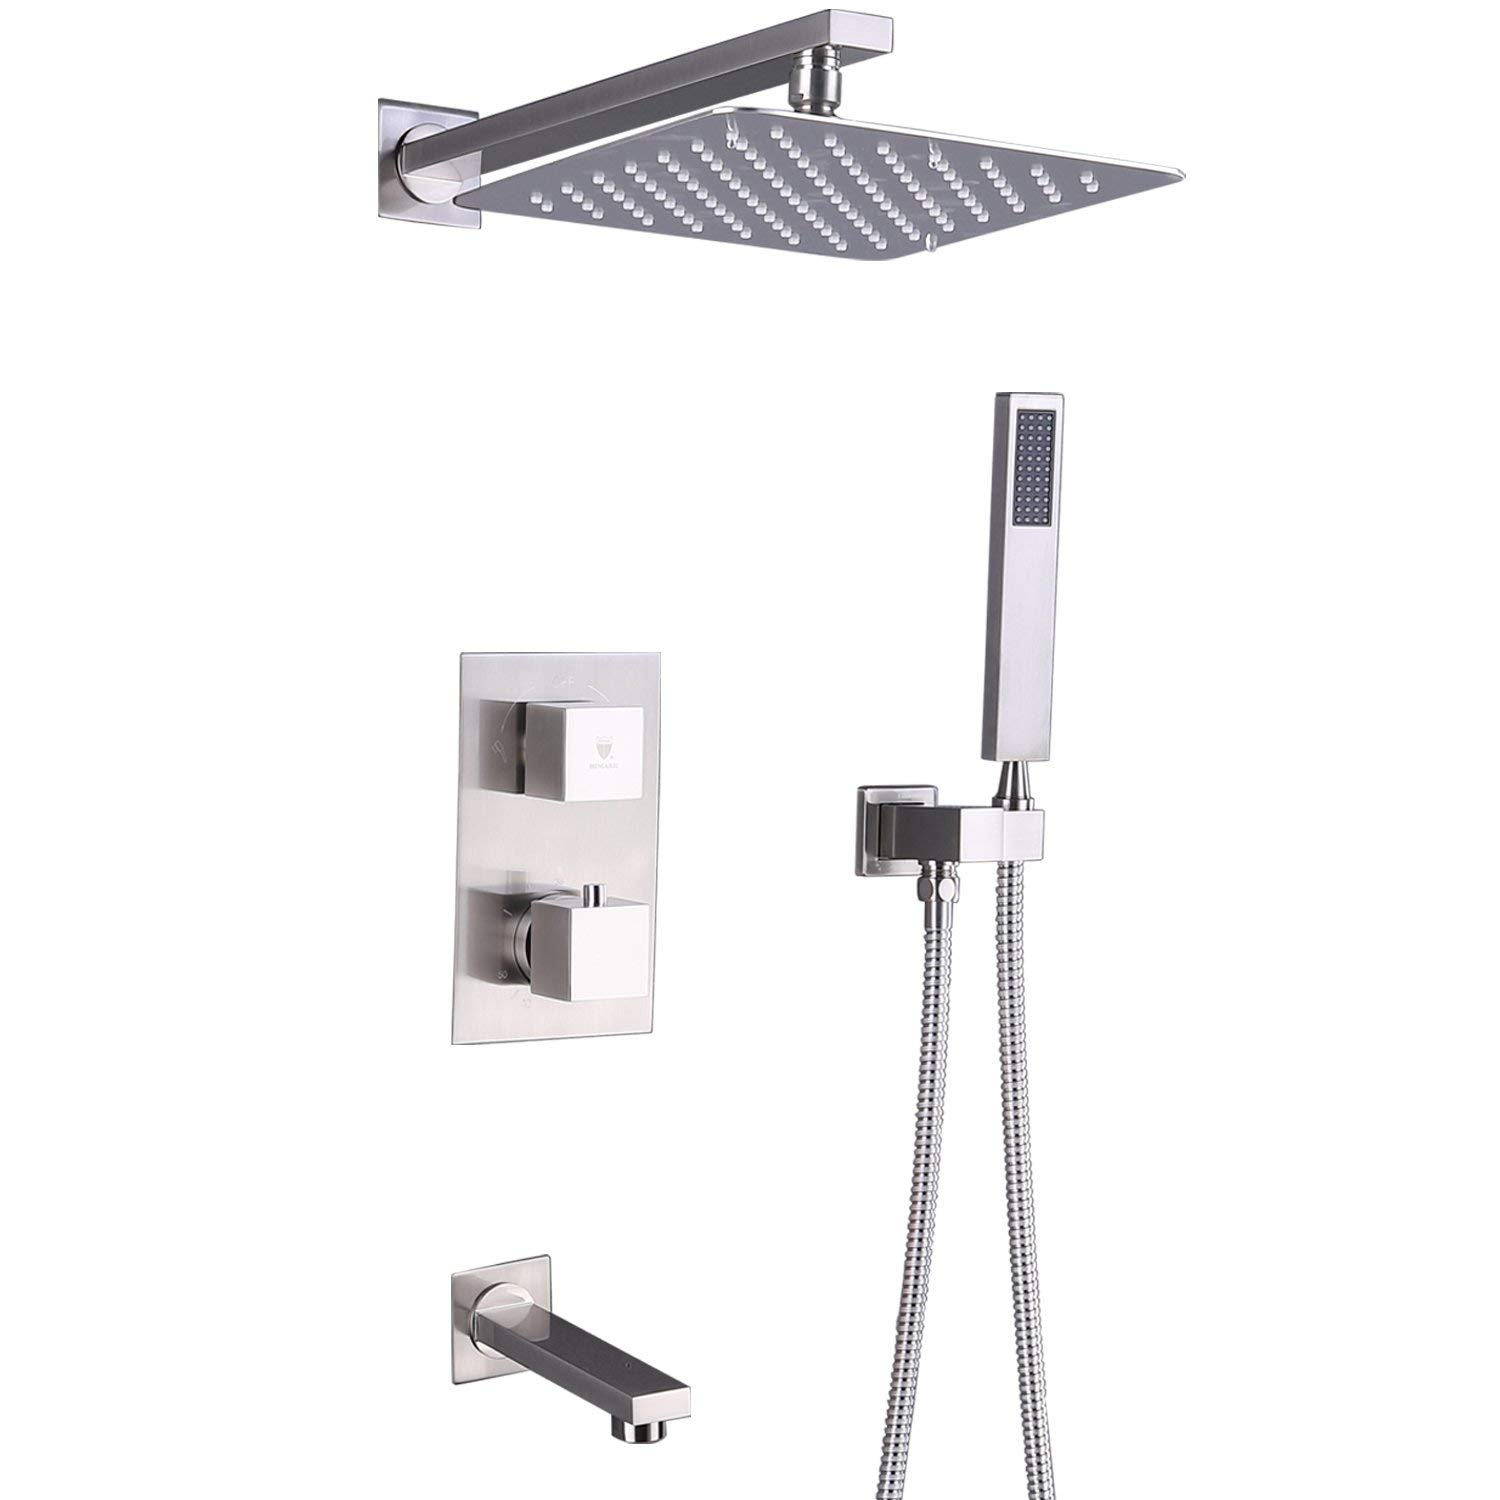 Cheap Tub Spout Shower, find Tub Spout Shower deals on line at ...